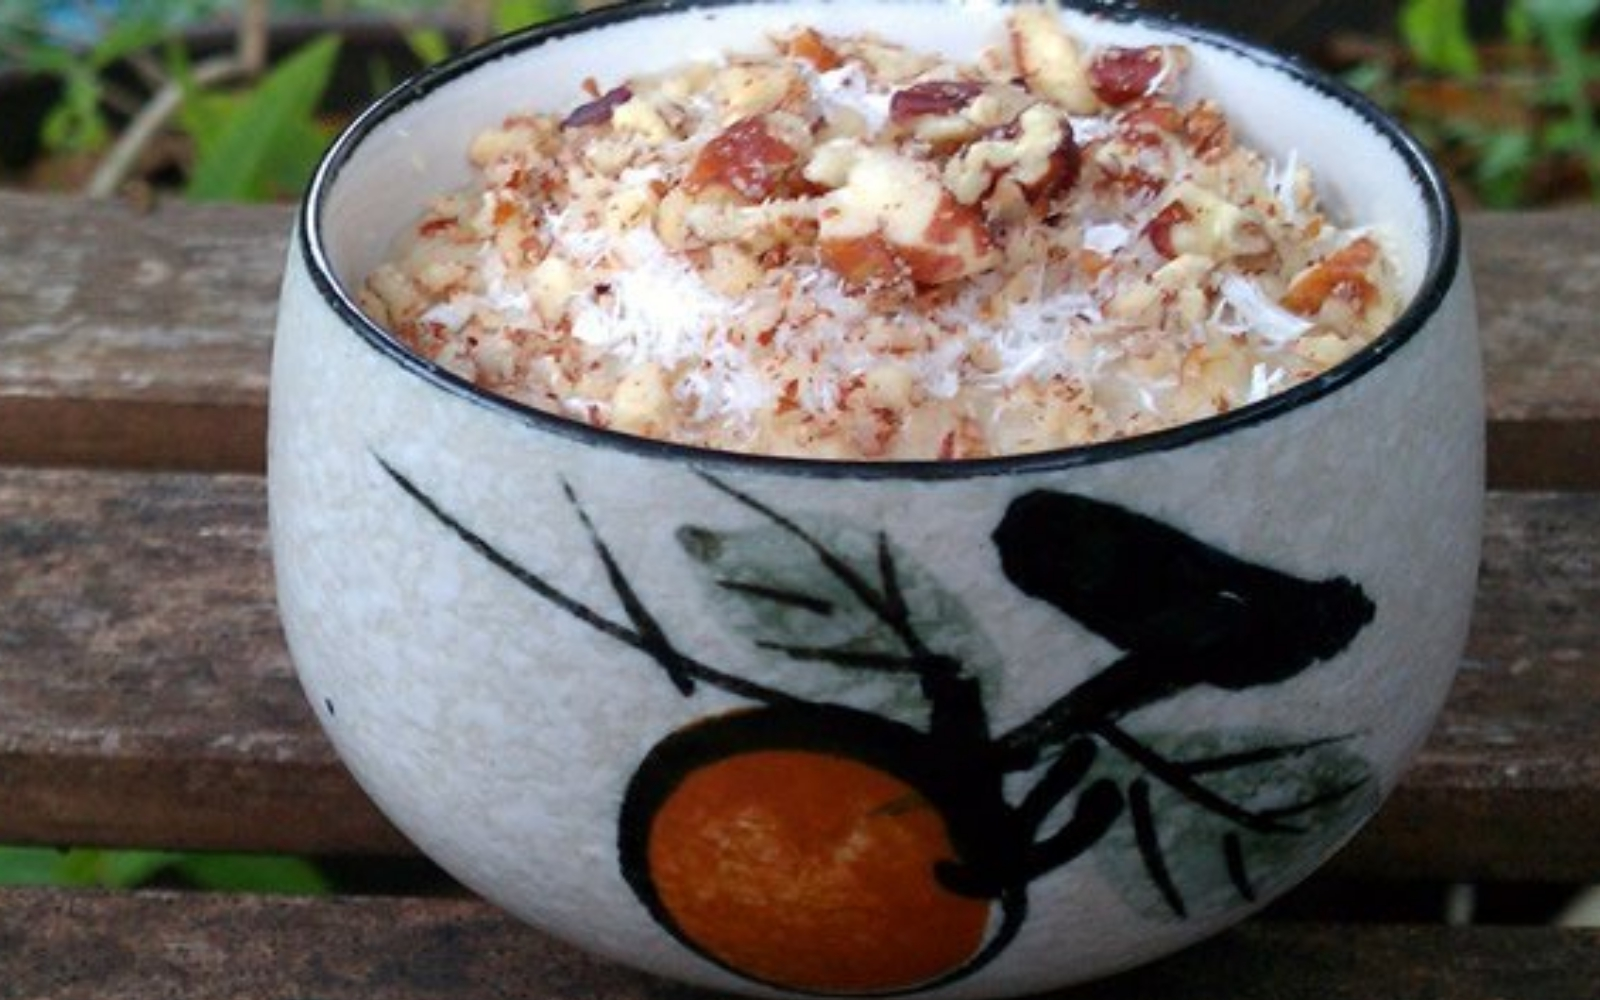 Vegan Slow Cooker Coconut Banana Pecan Oatmeal